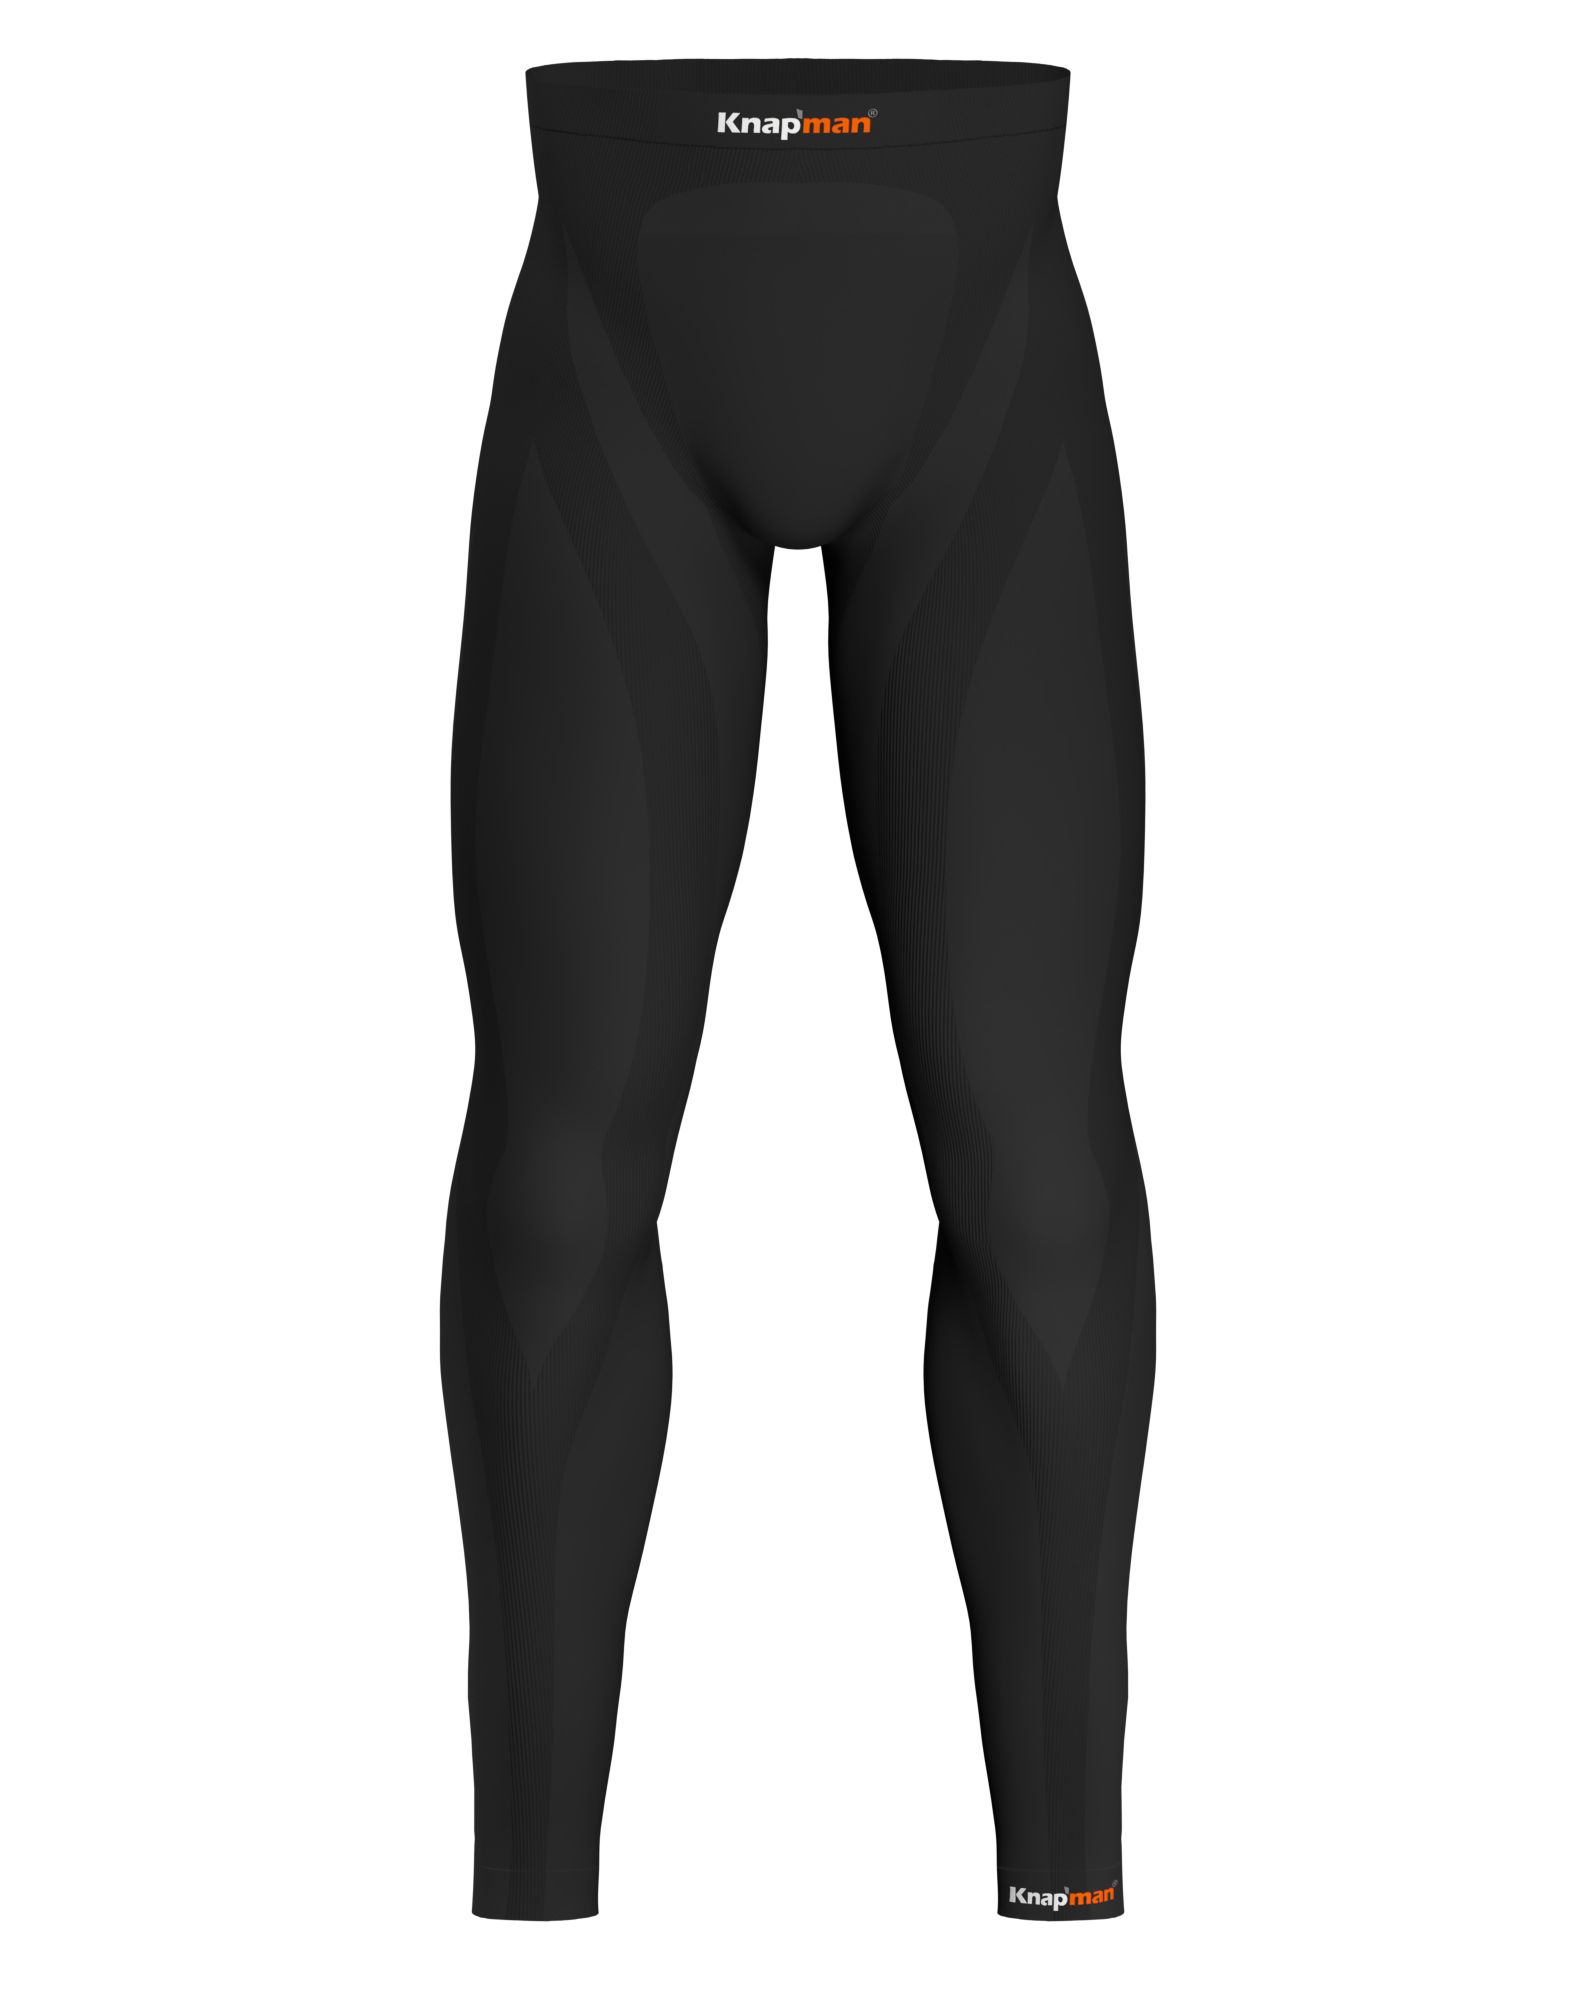 Knap'man Zoned Compression Pants Long USP 25% Zwart